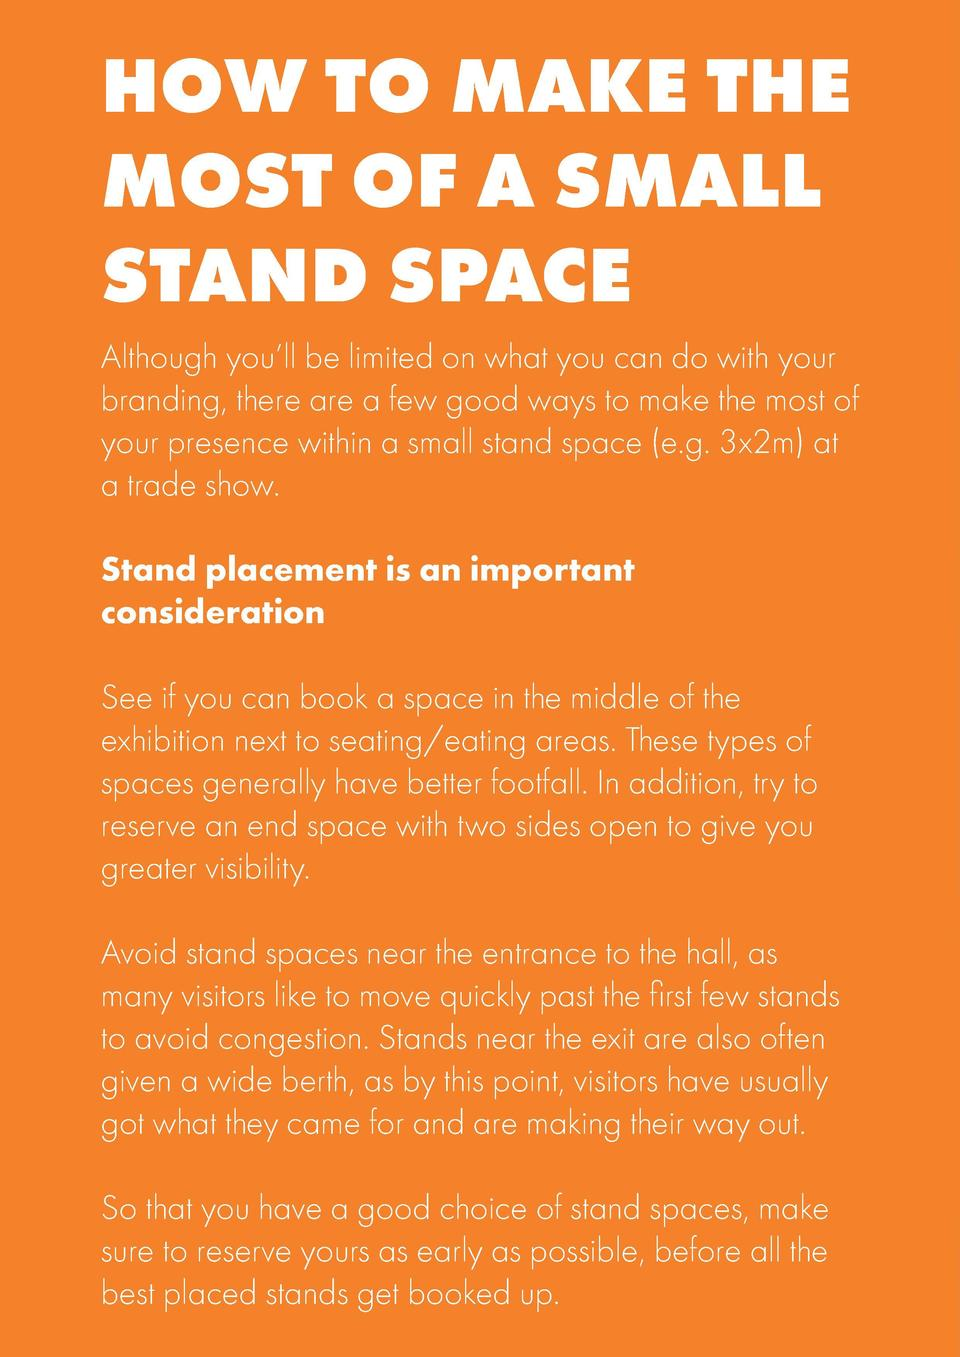 HOW TO MAKE THE MOST OF A SMALL STAND SPACE Although you   ll be limited on what you can do with your branding, there are ...